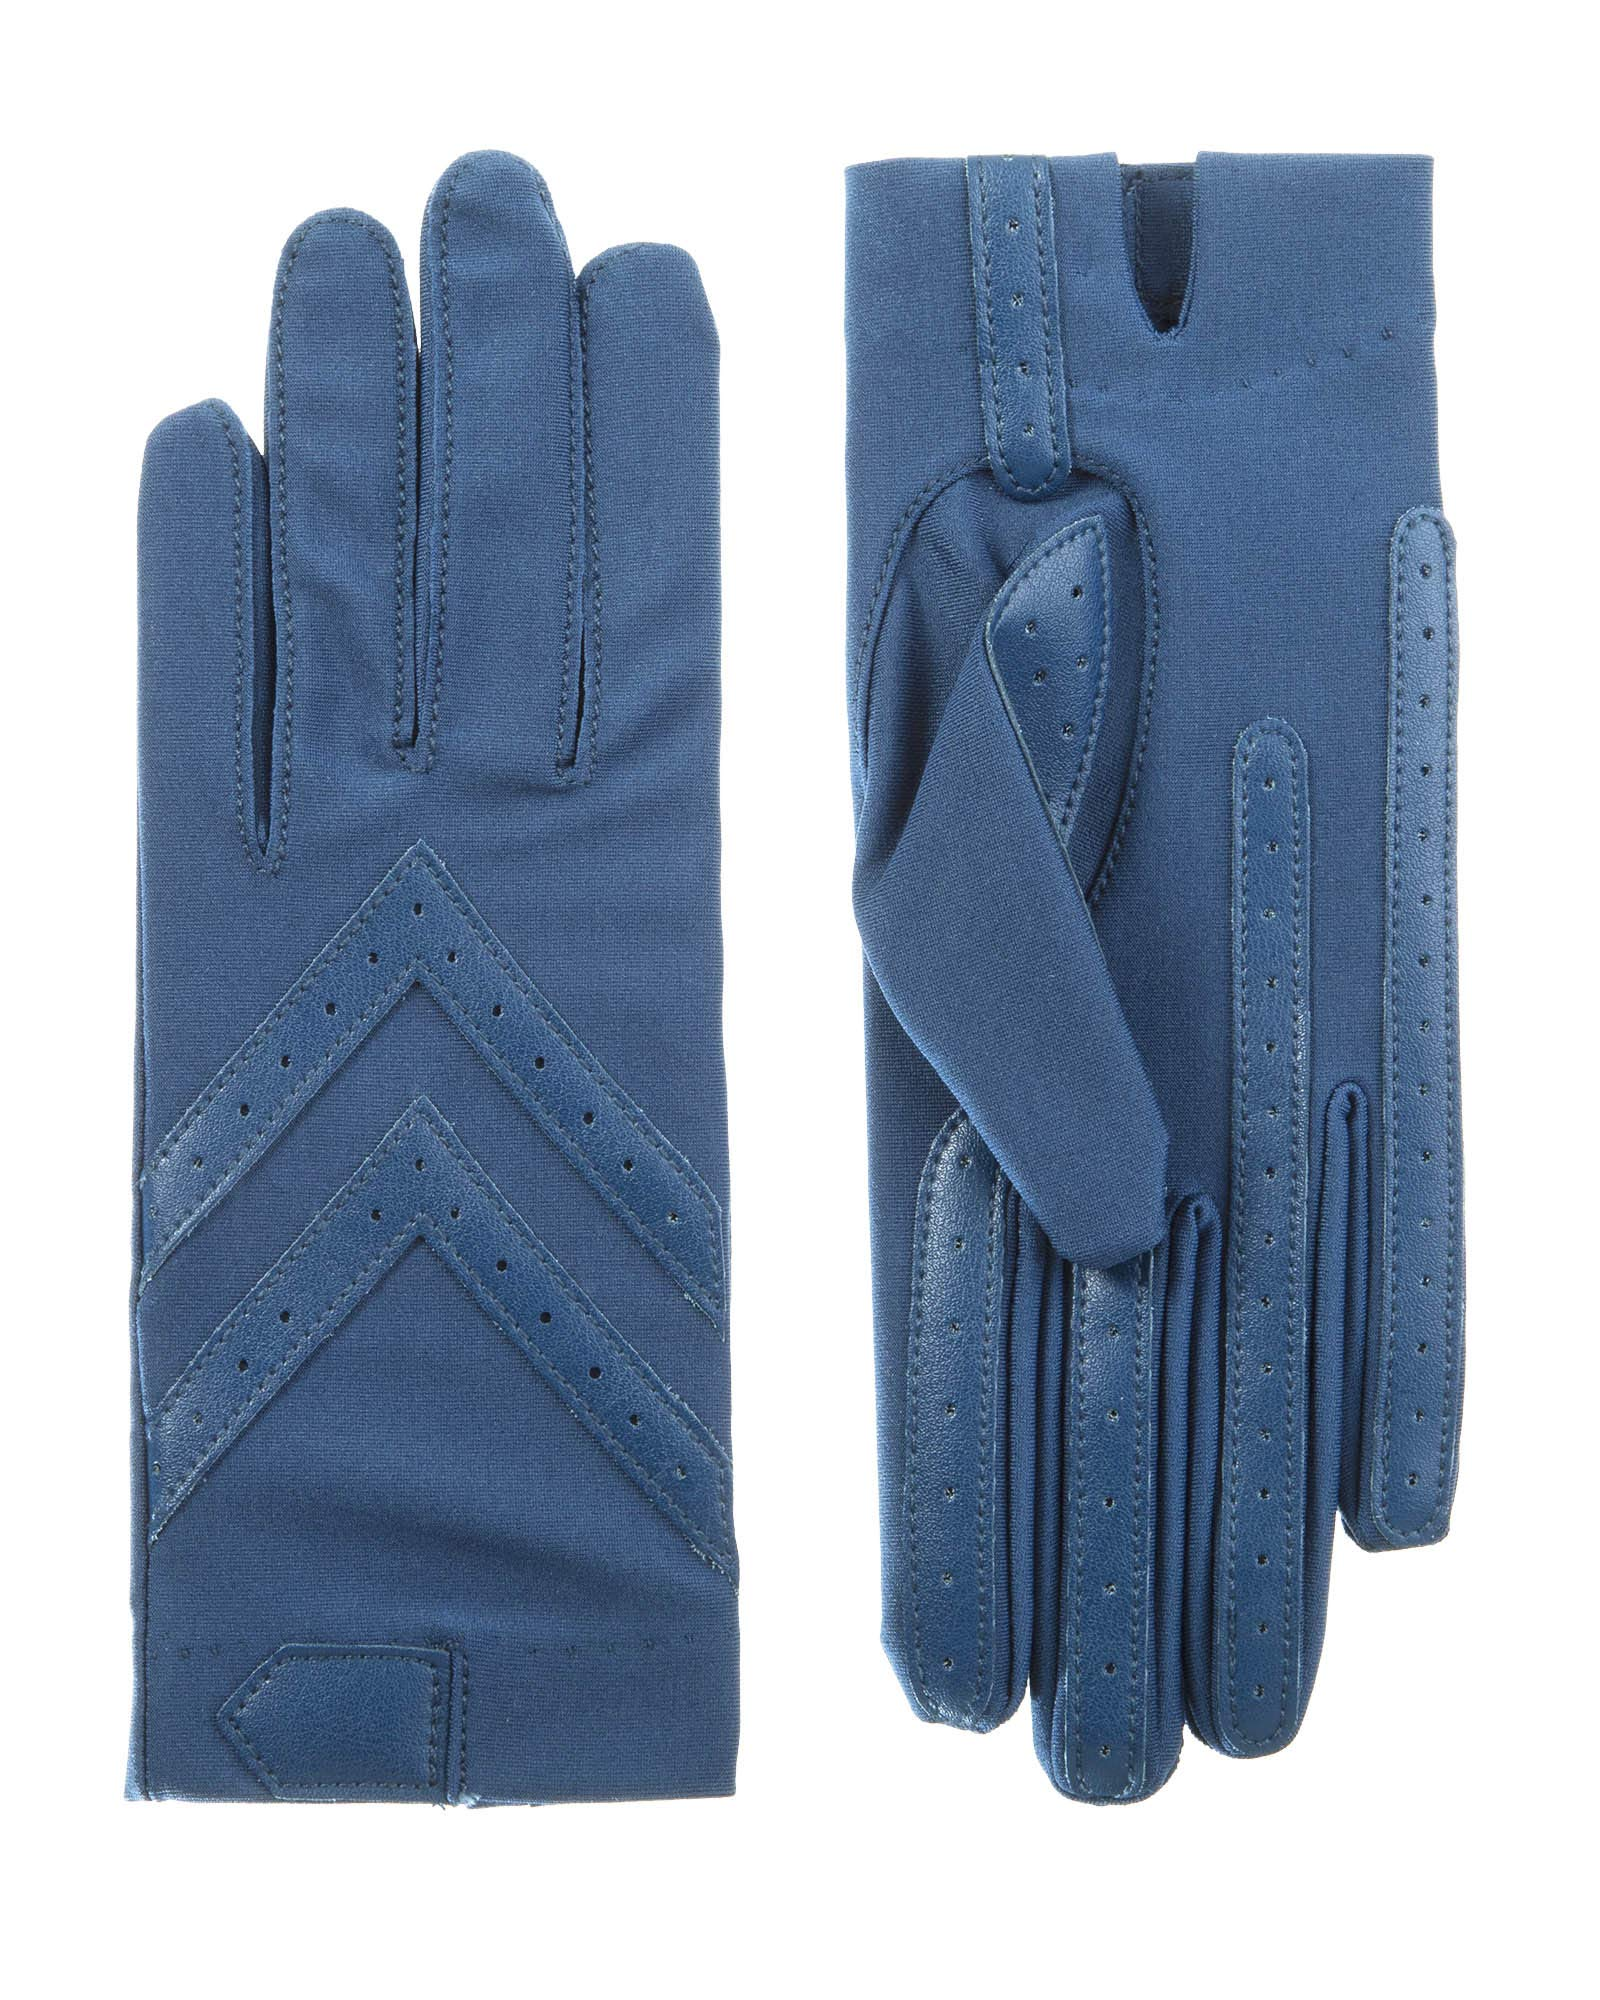 Isotoner Short Tech Touch Driving Gloves, Admiral Blue, Small/Medium by ISOTONER